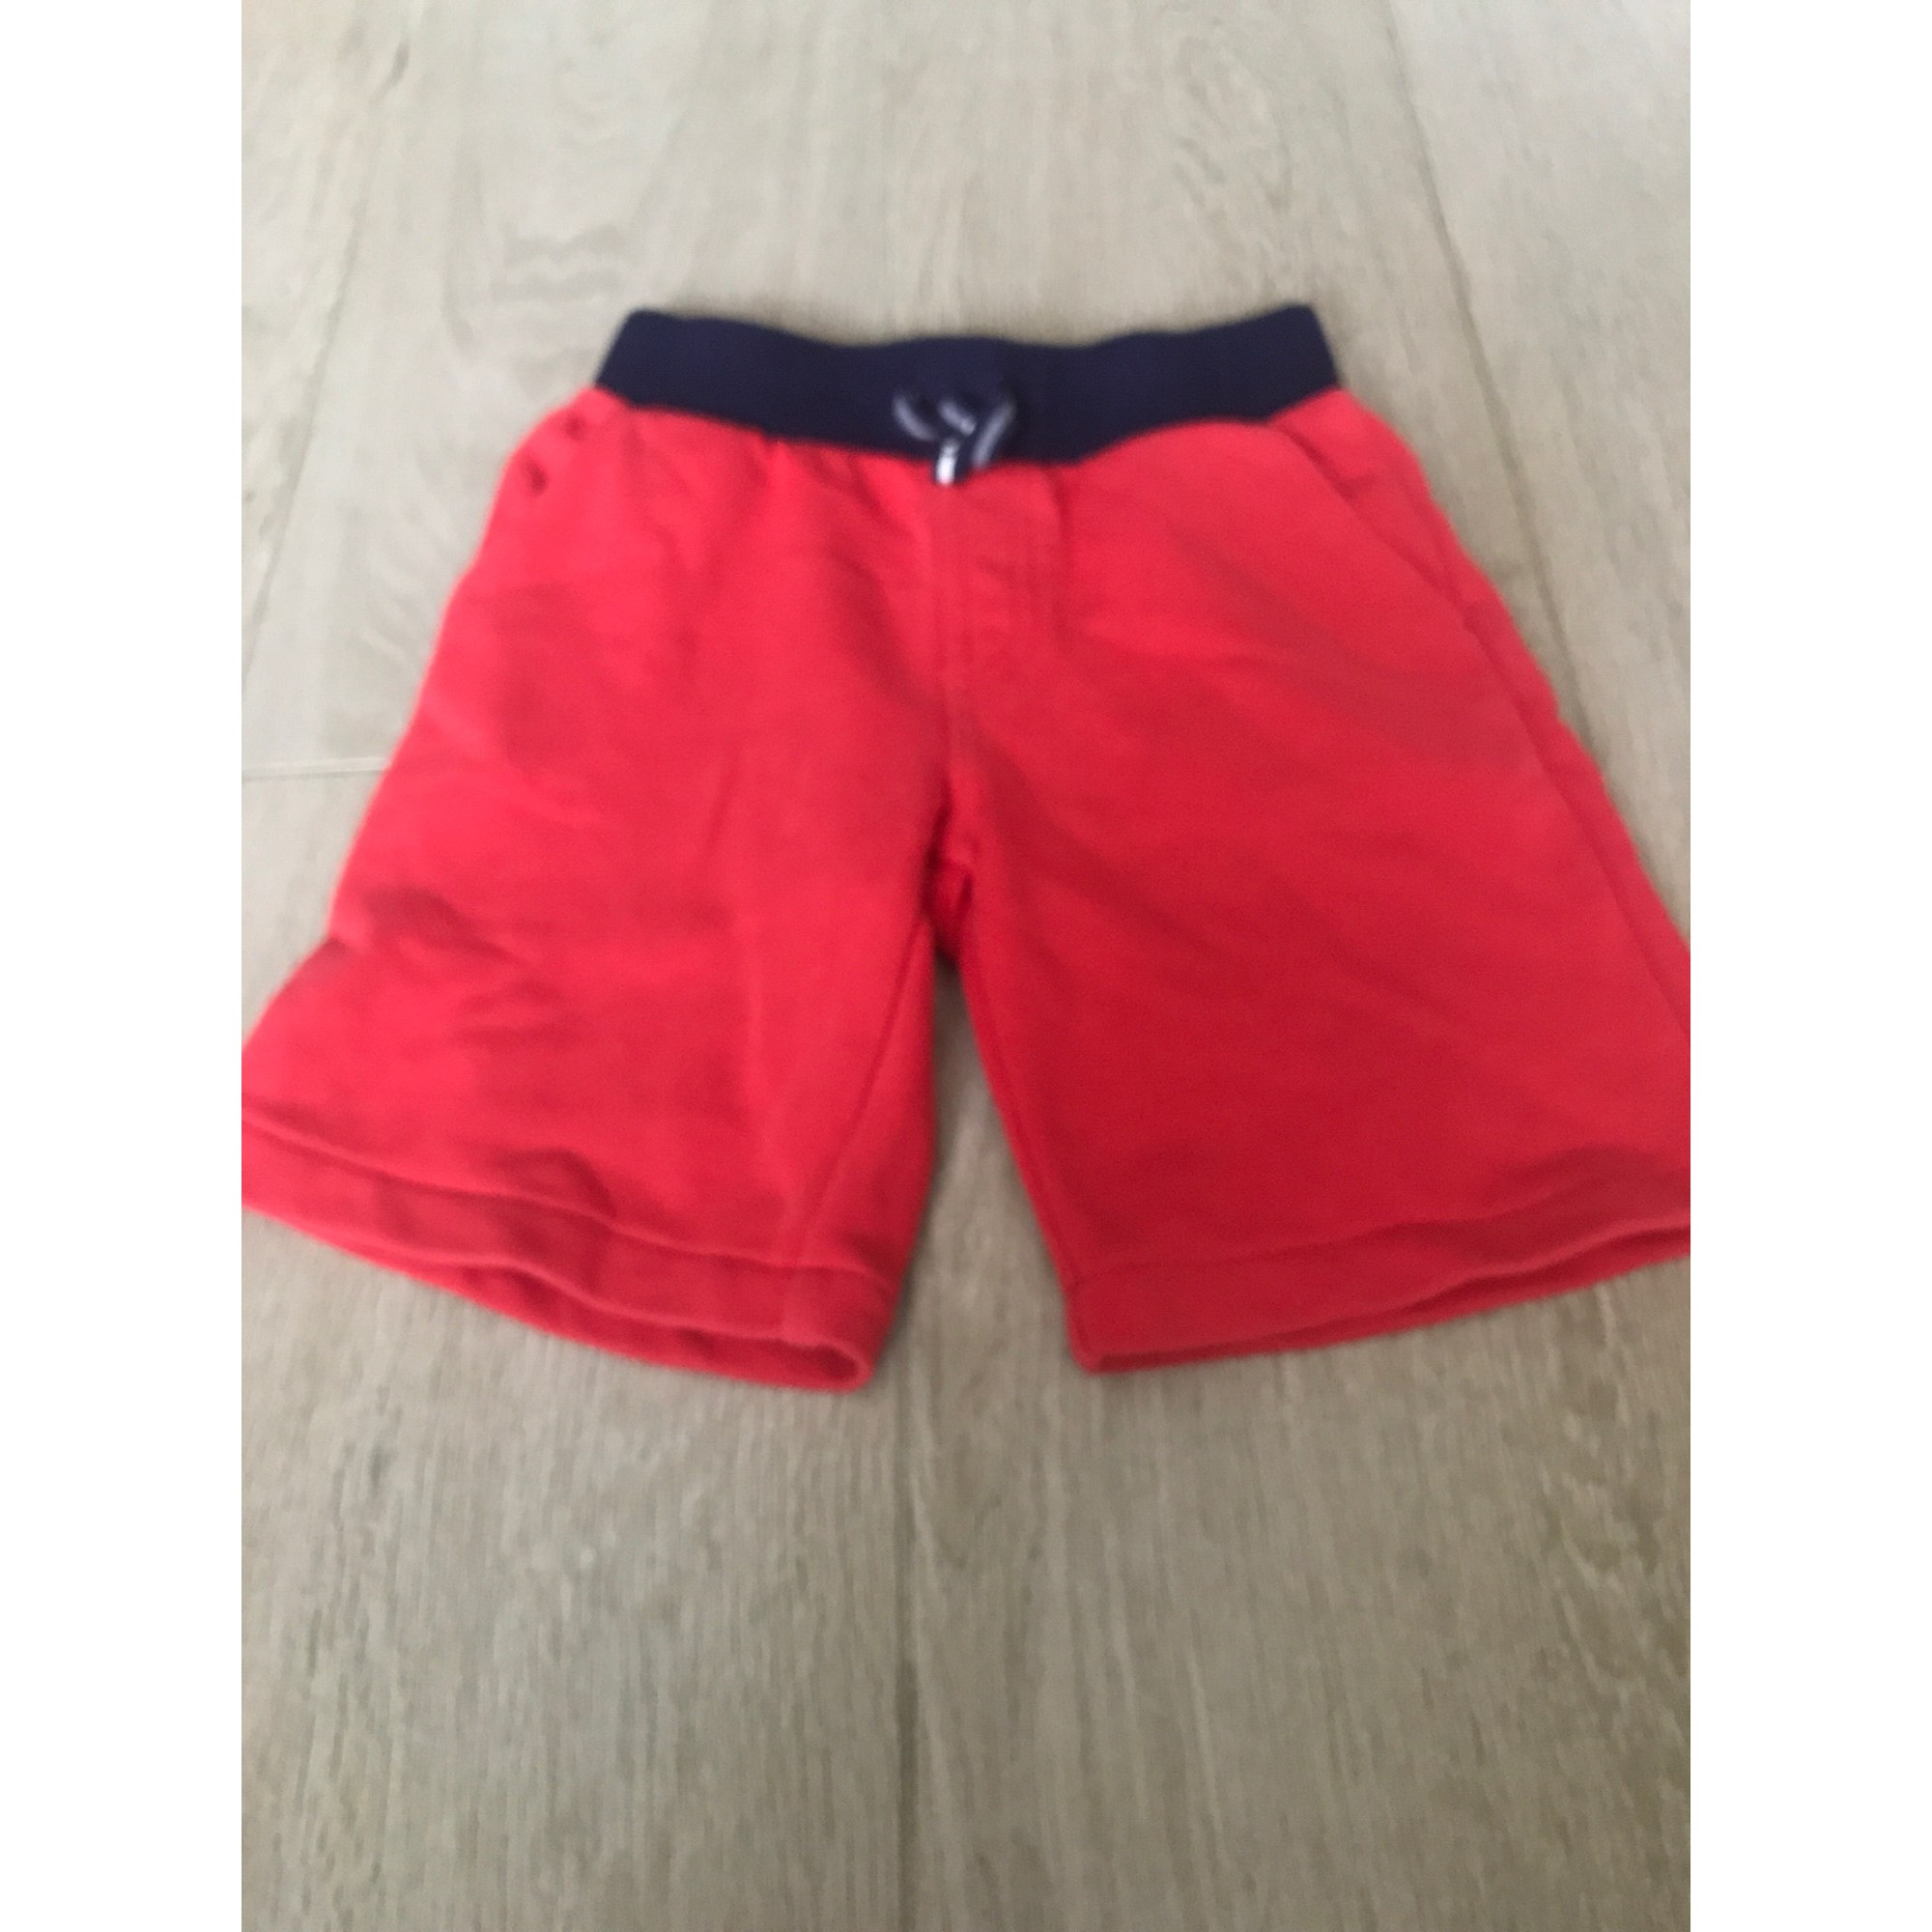 Short LACOSTE Rouge, bordeaux